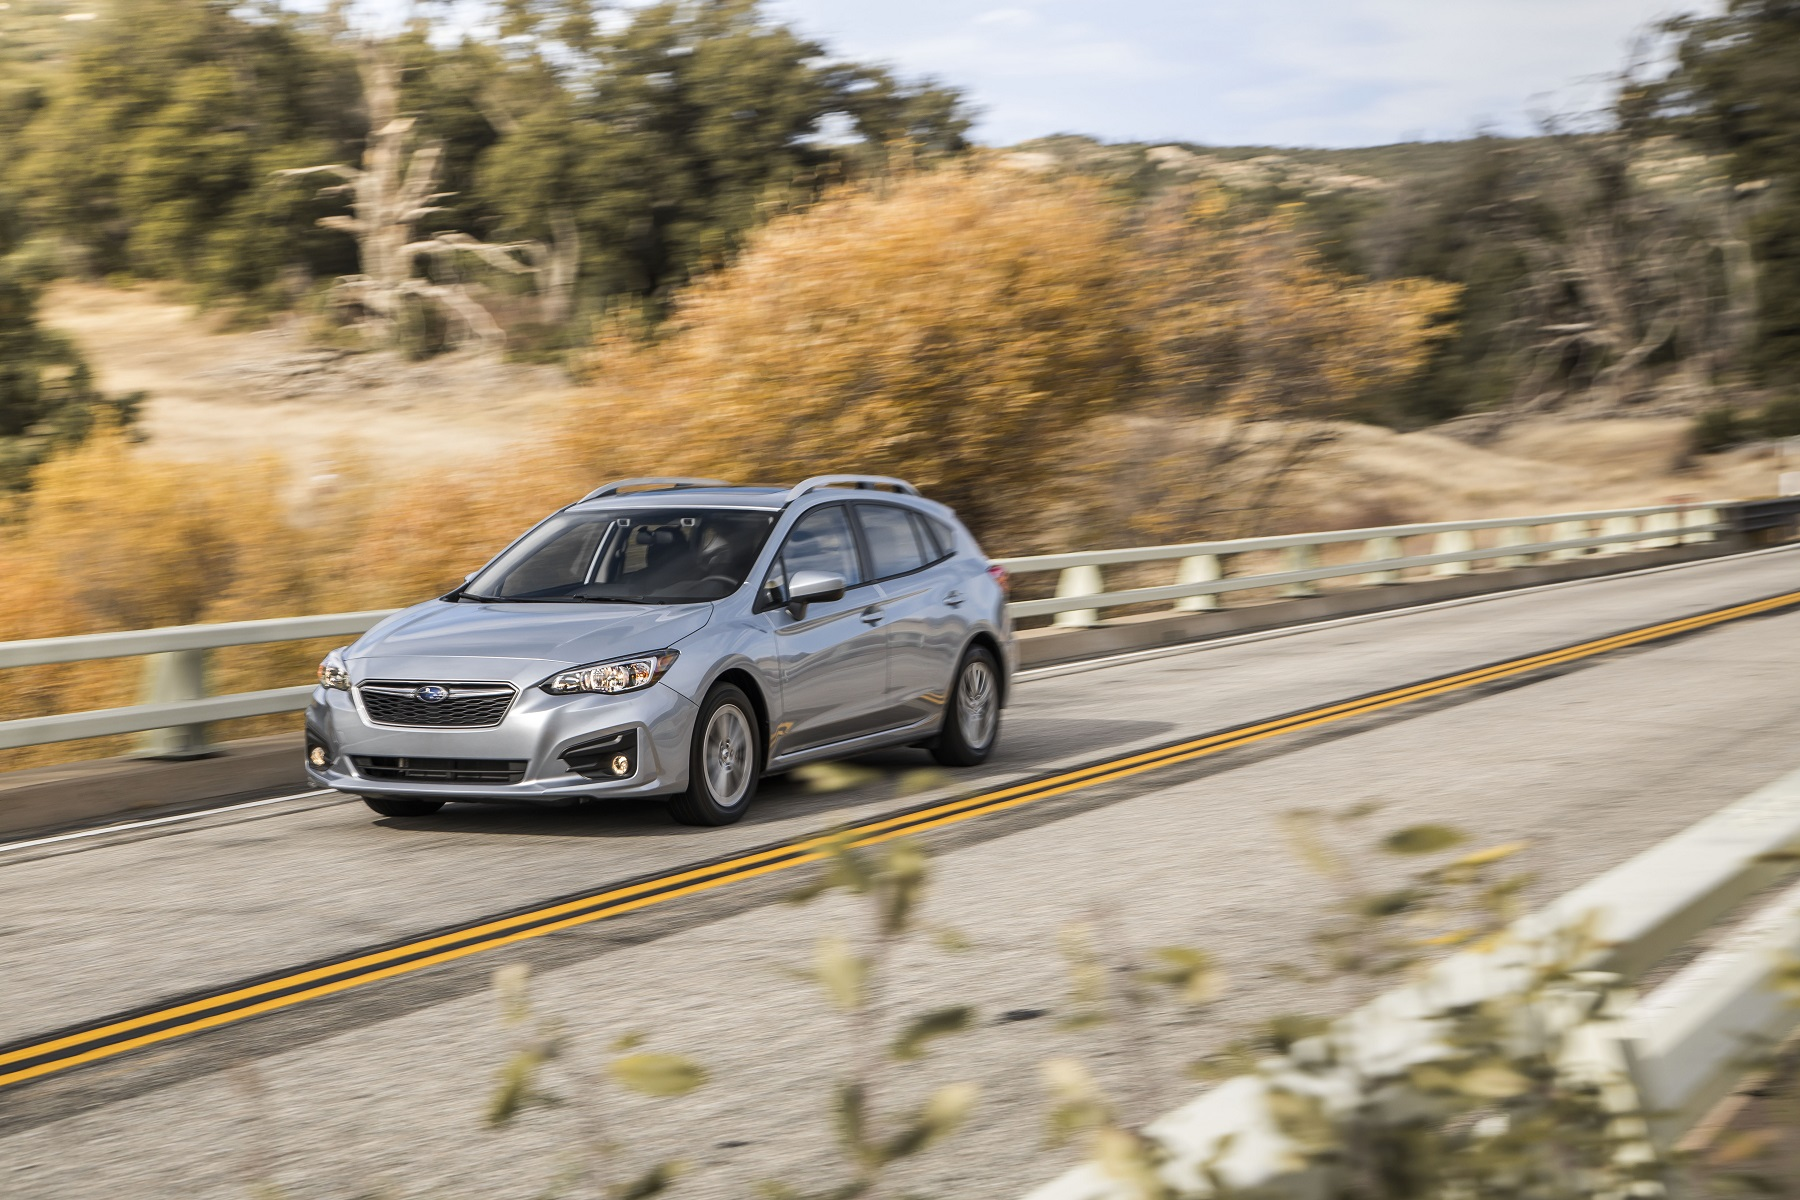 2017 Subaru Impreza lineup grows in quality, efficiency